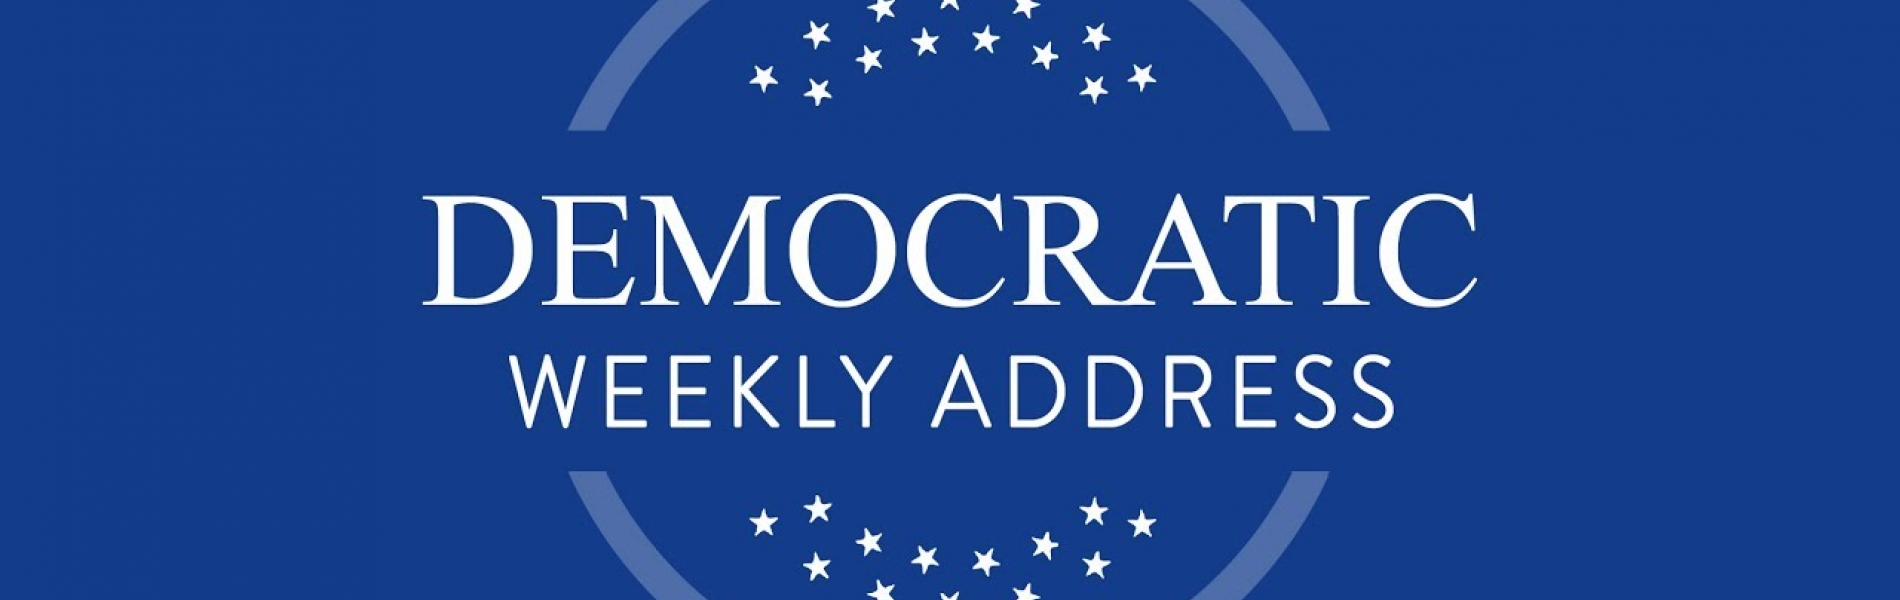 Democratic Weekly Address